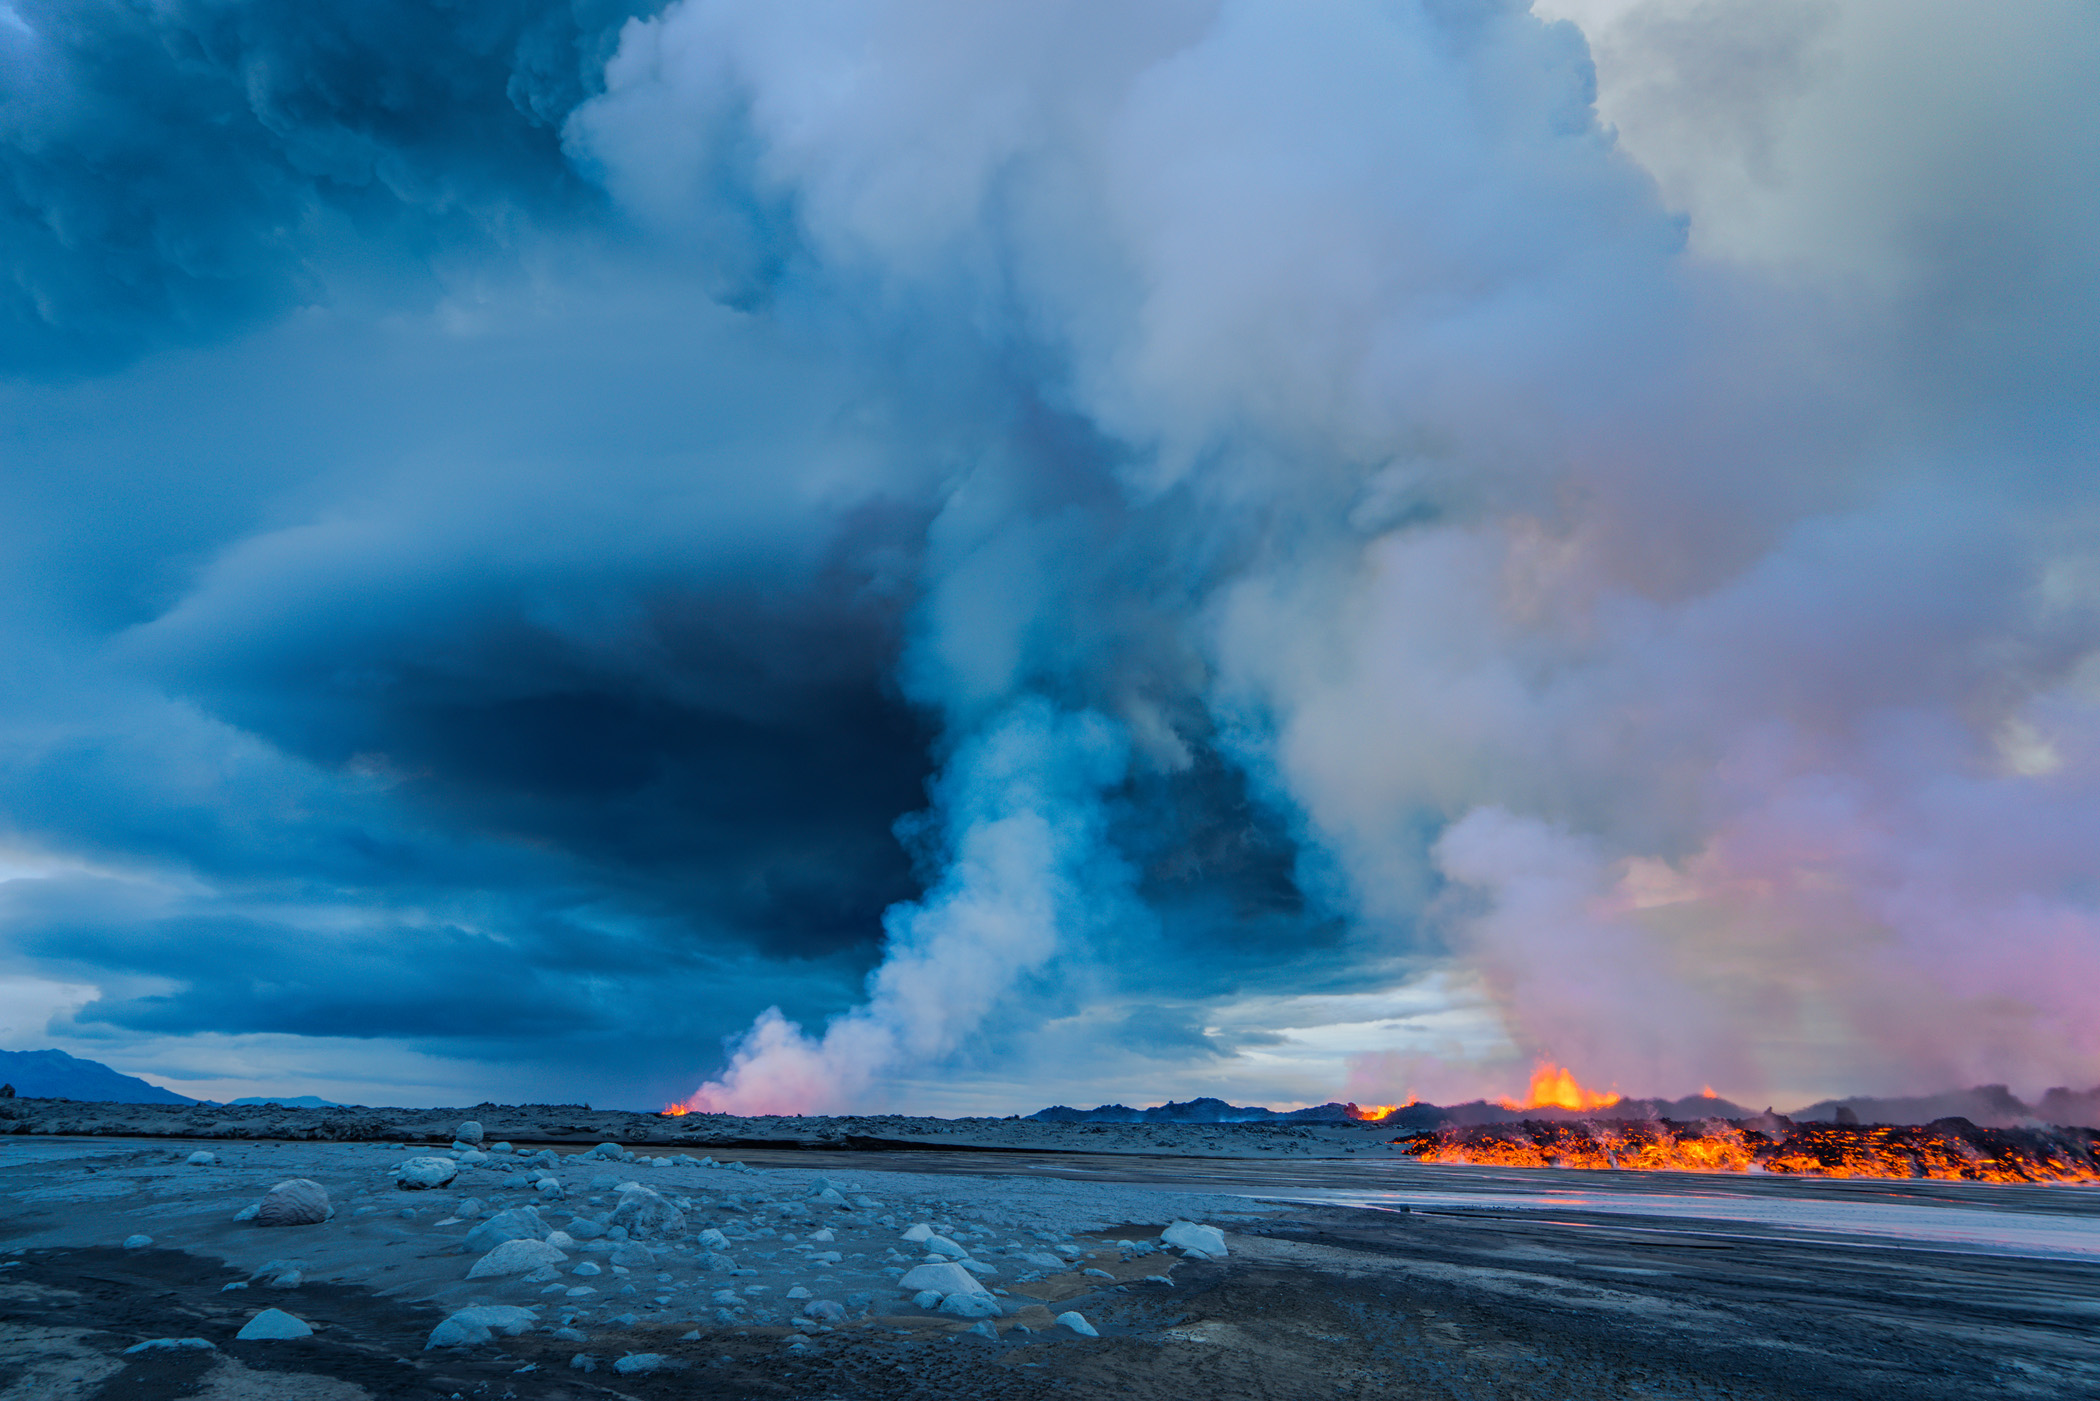 A late afternoon view of part of the fissure erupting as fumes and steam rise into the air near Bardarbunga. Sept. 2.